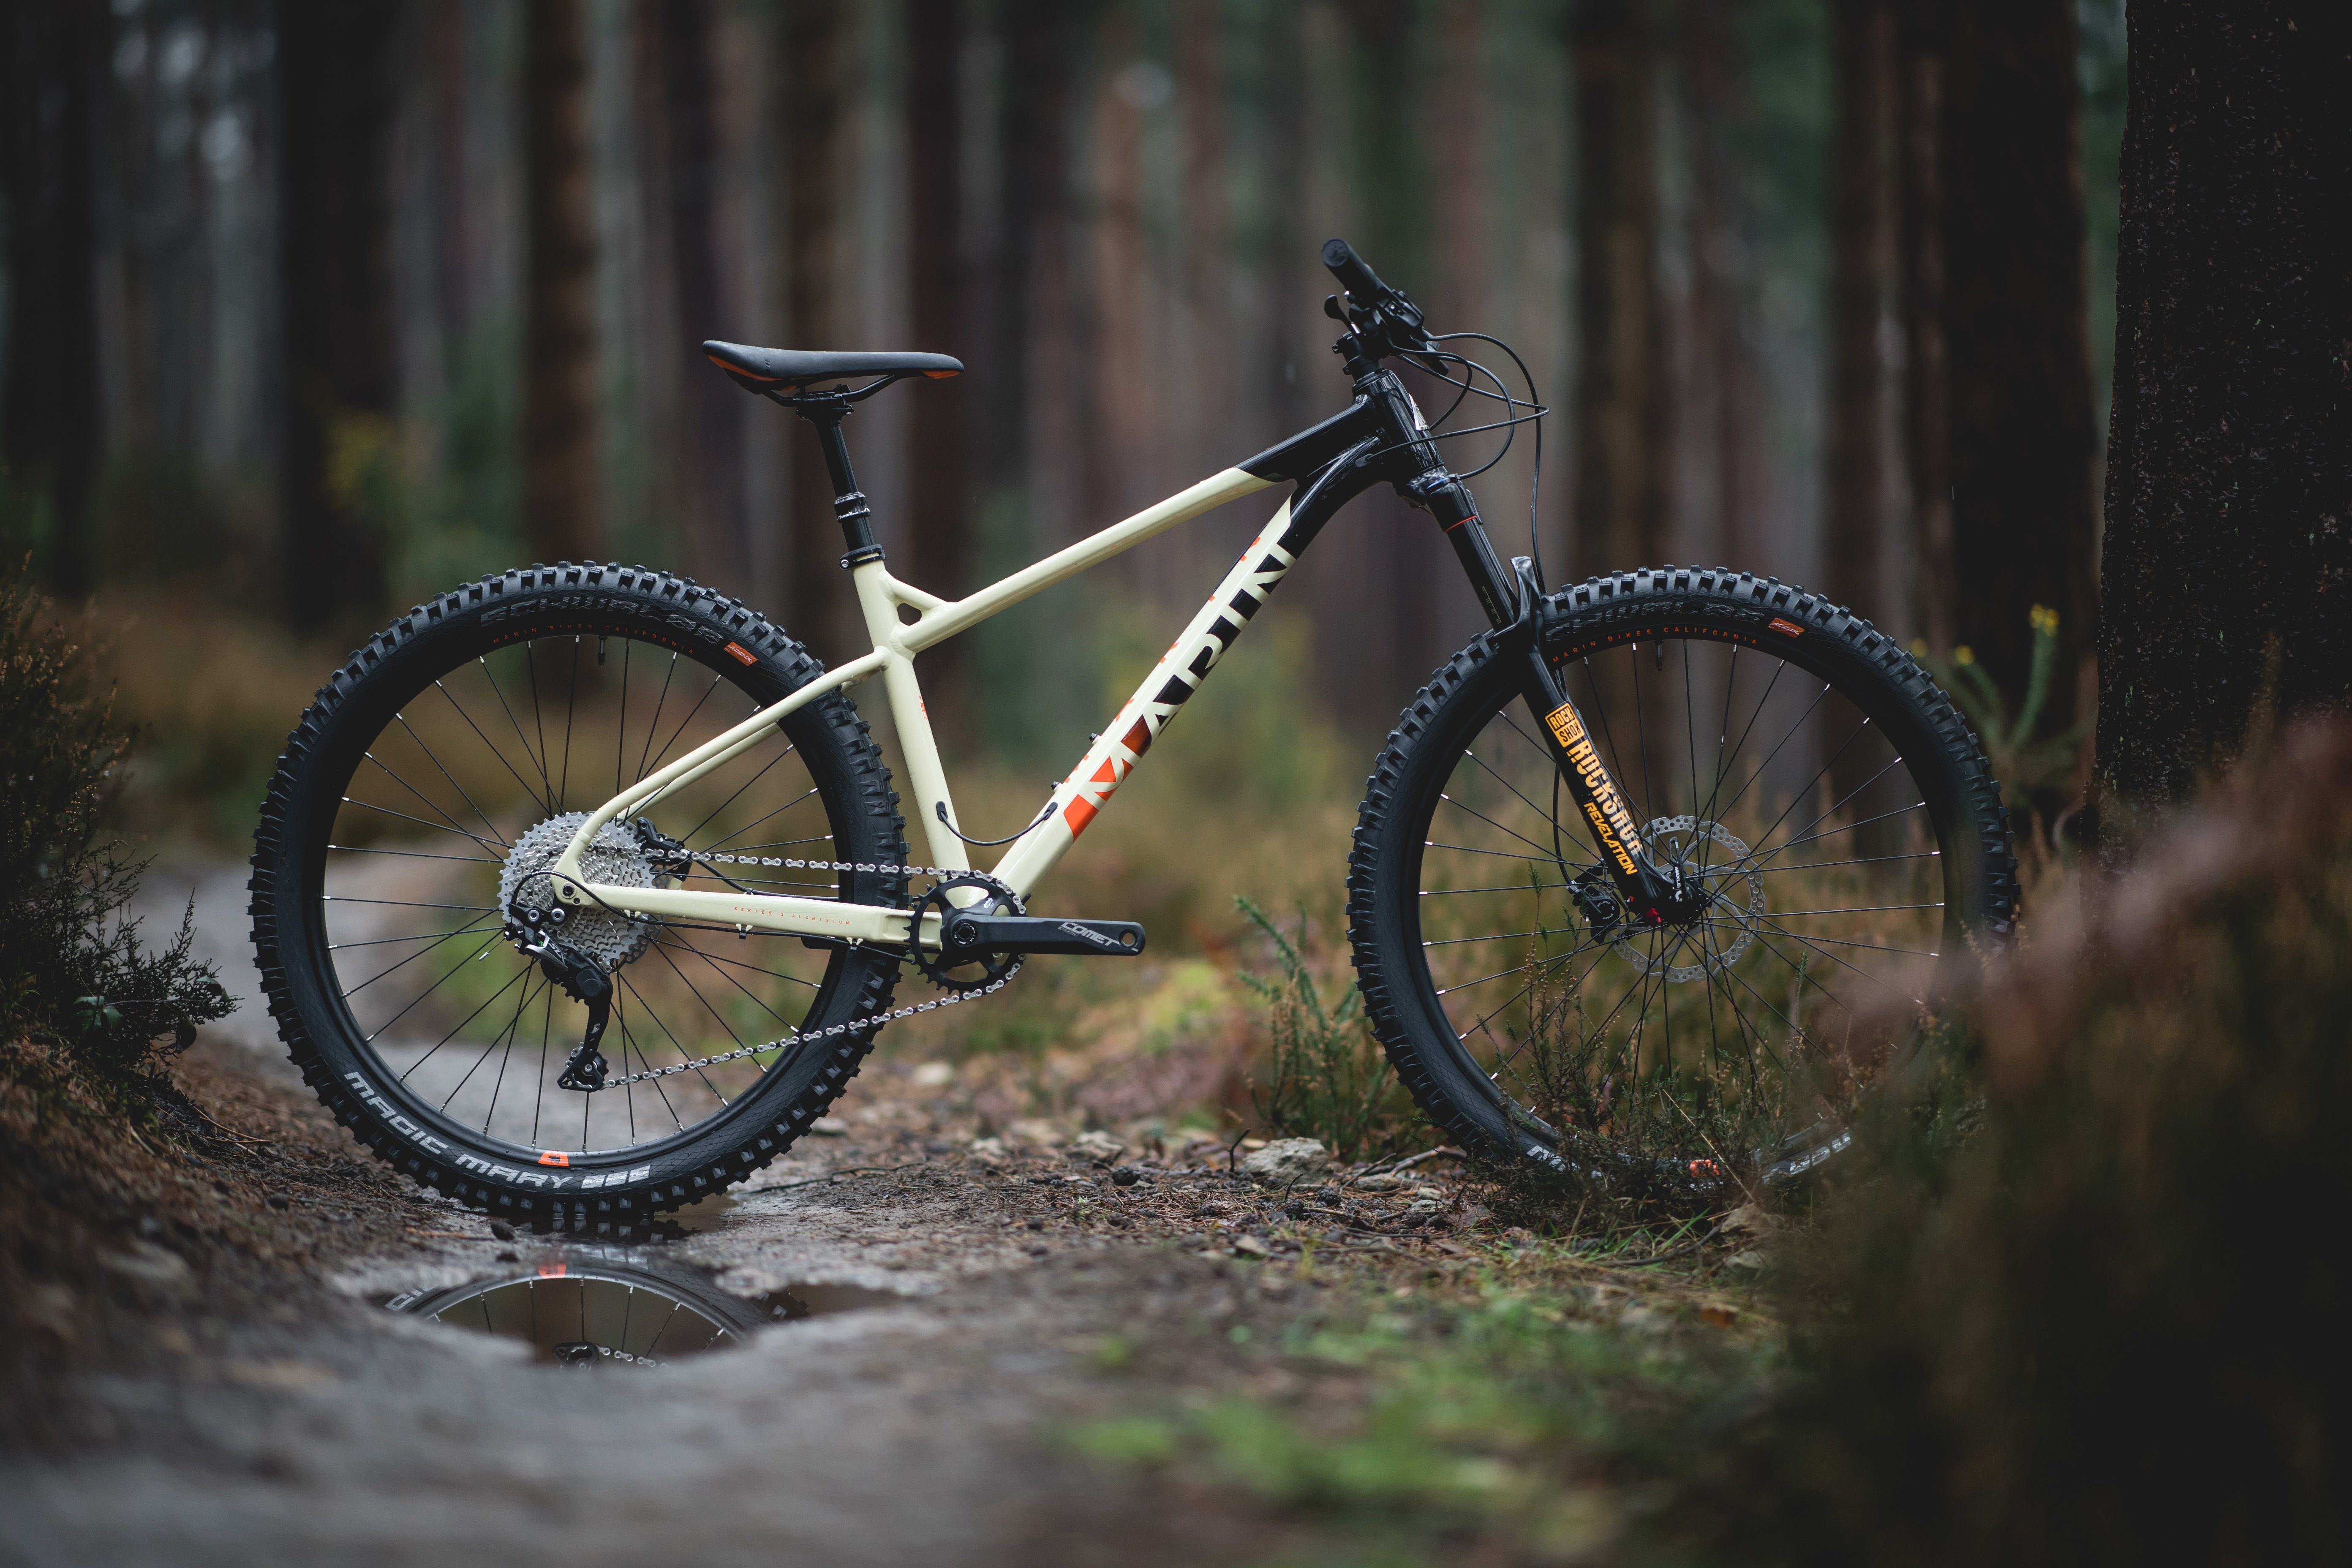 Pin By Lycan On Mtb Lycan In 2020 With Images Bike Trails